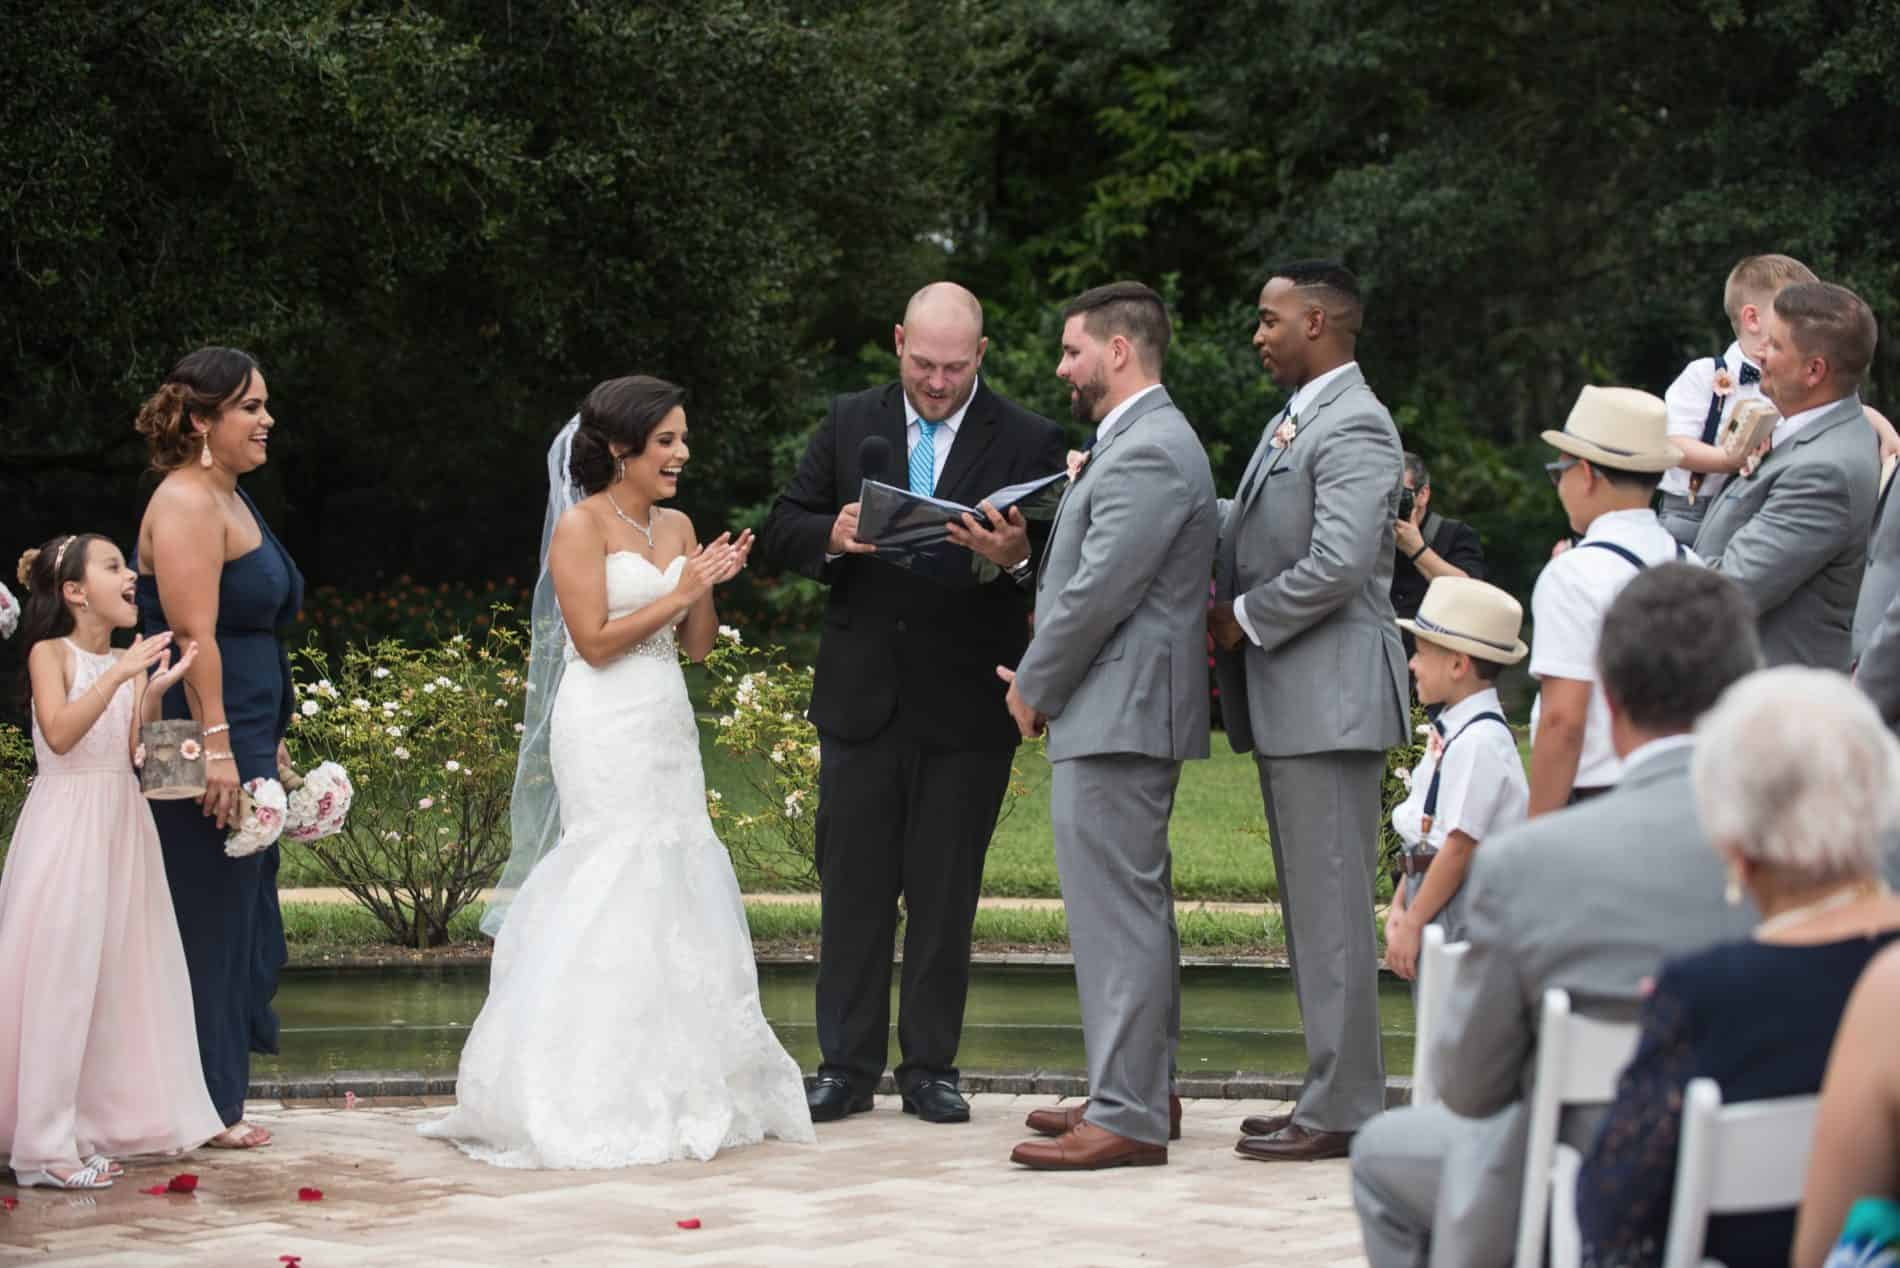 Having your Wedding outdoors